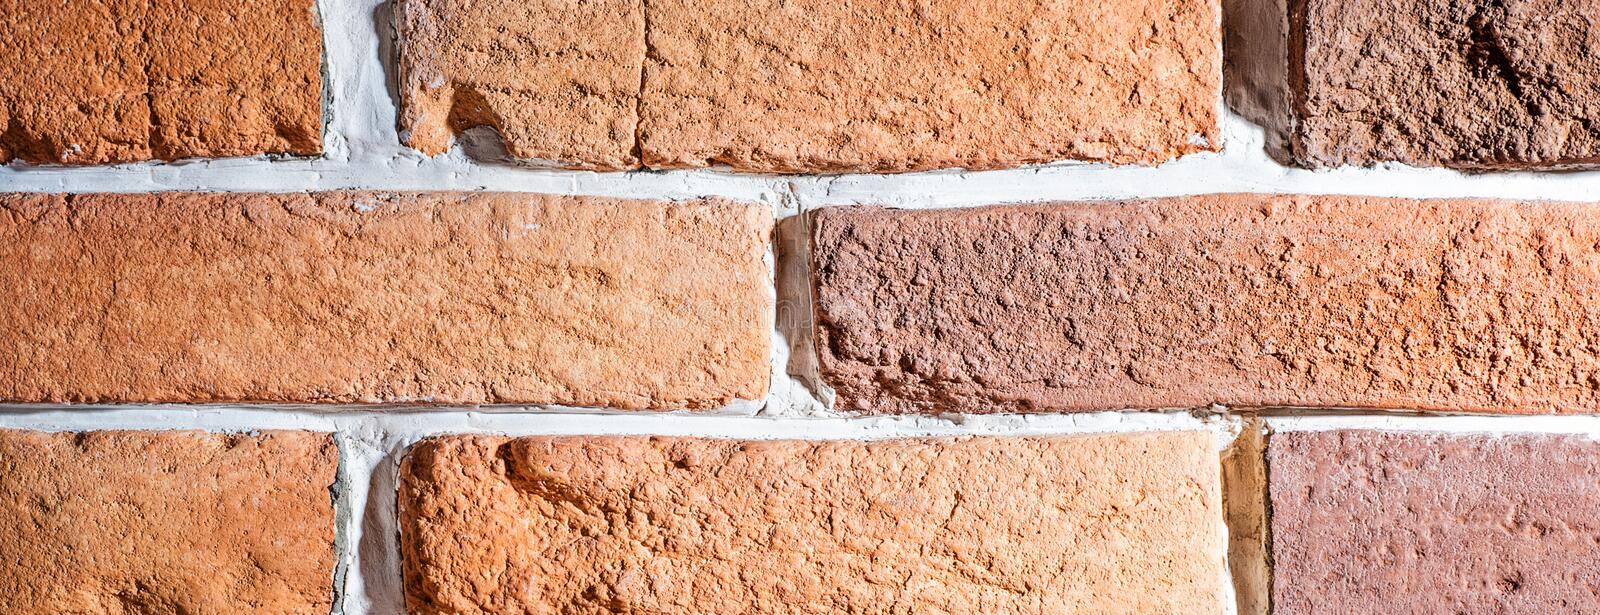 Brick wall artificial stone decor element for interior. Rustic rural vintage retro style stock images